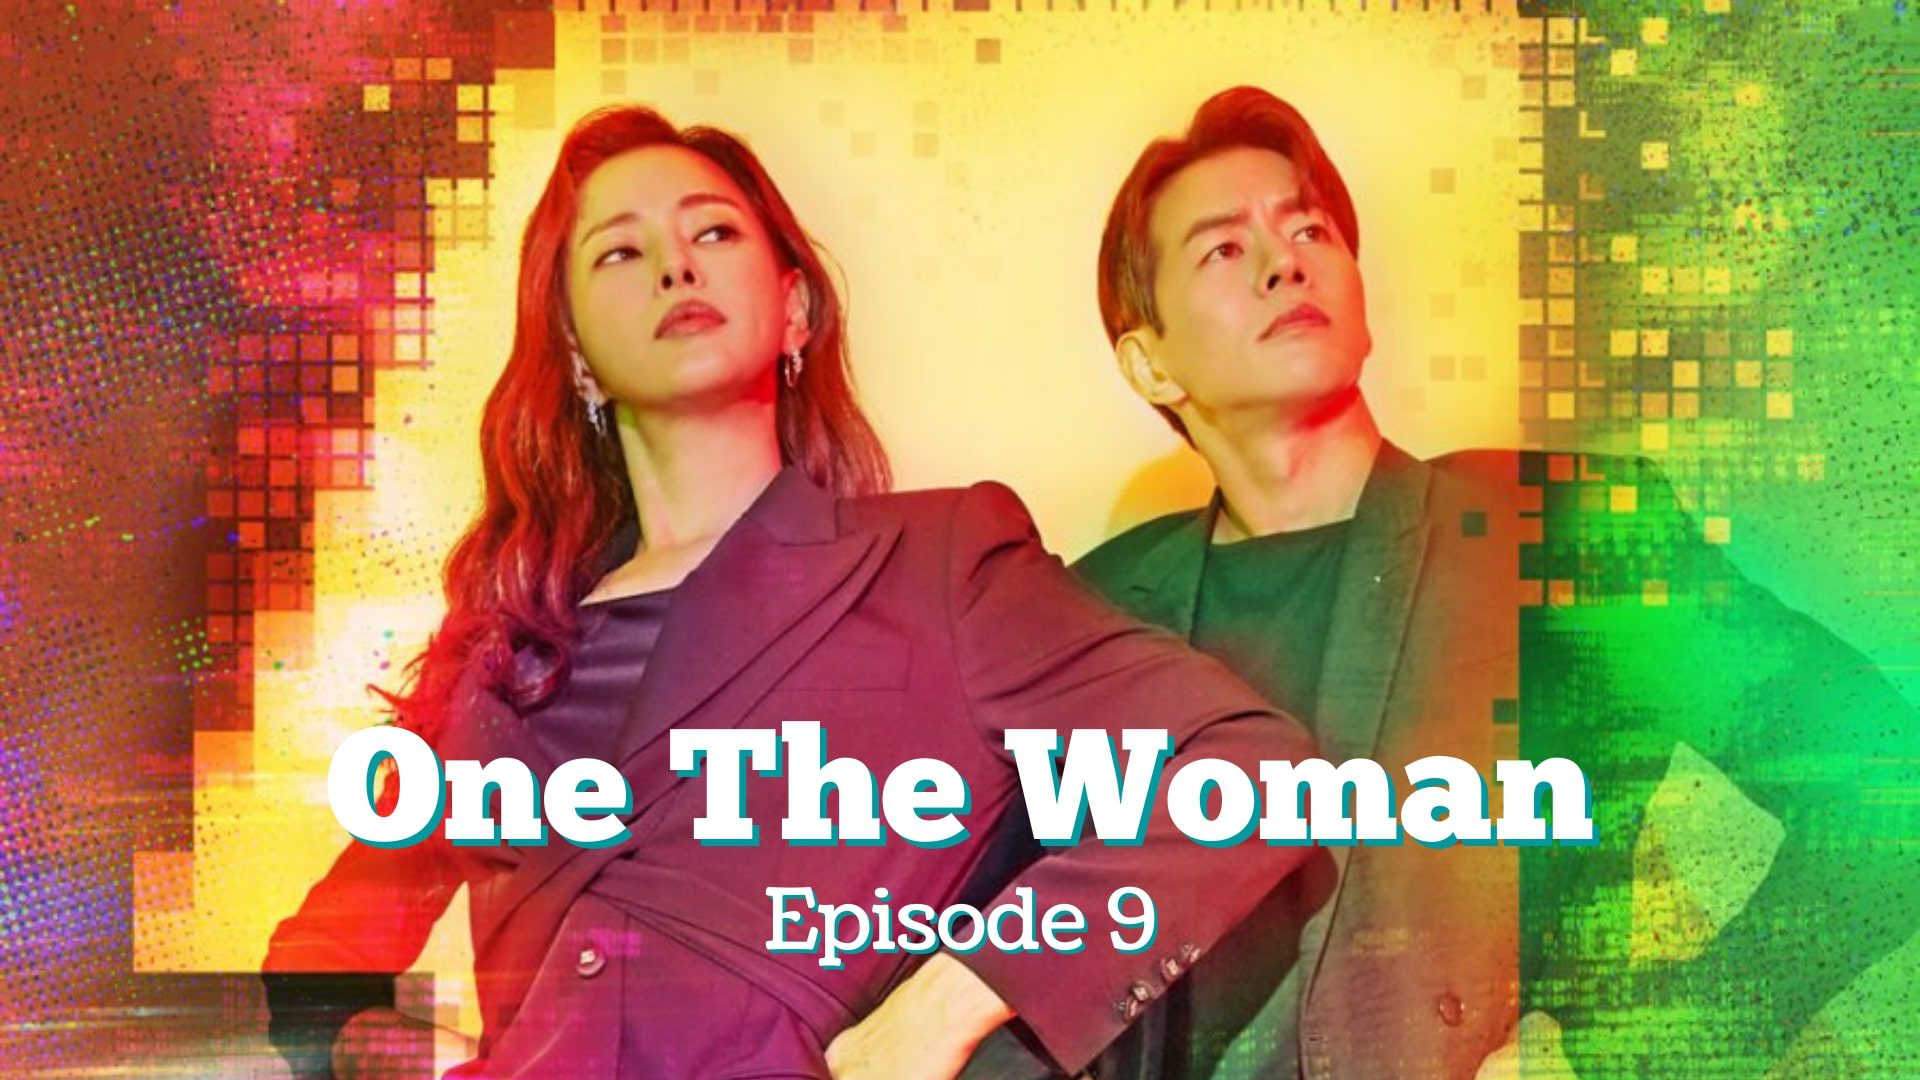 One The Woman Episode 9